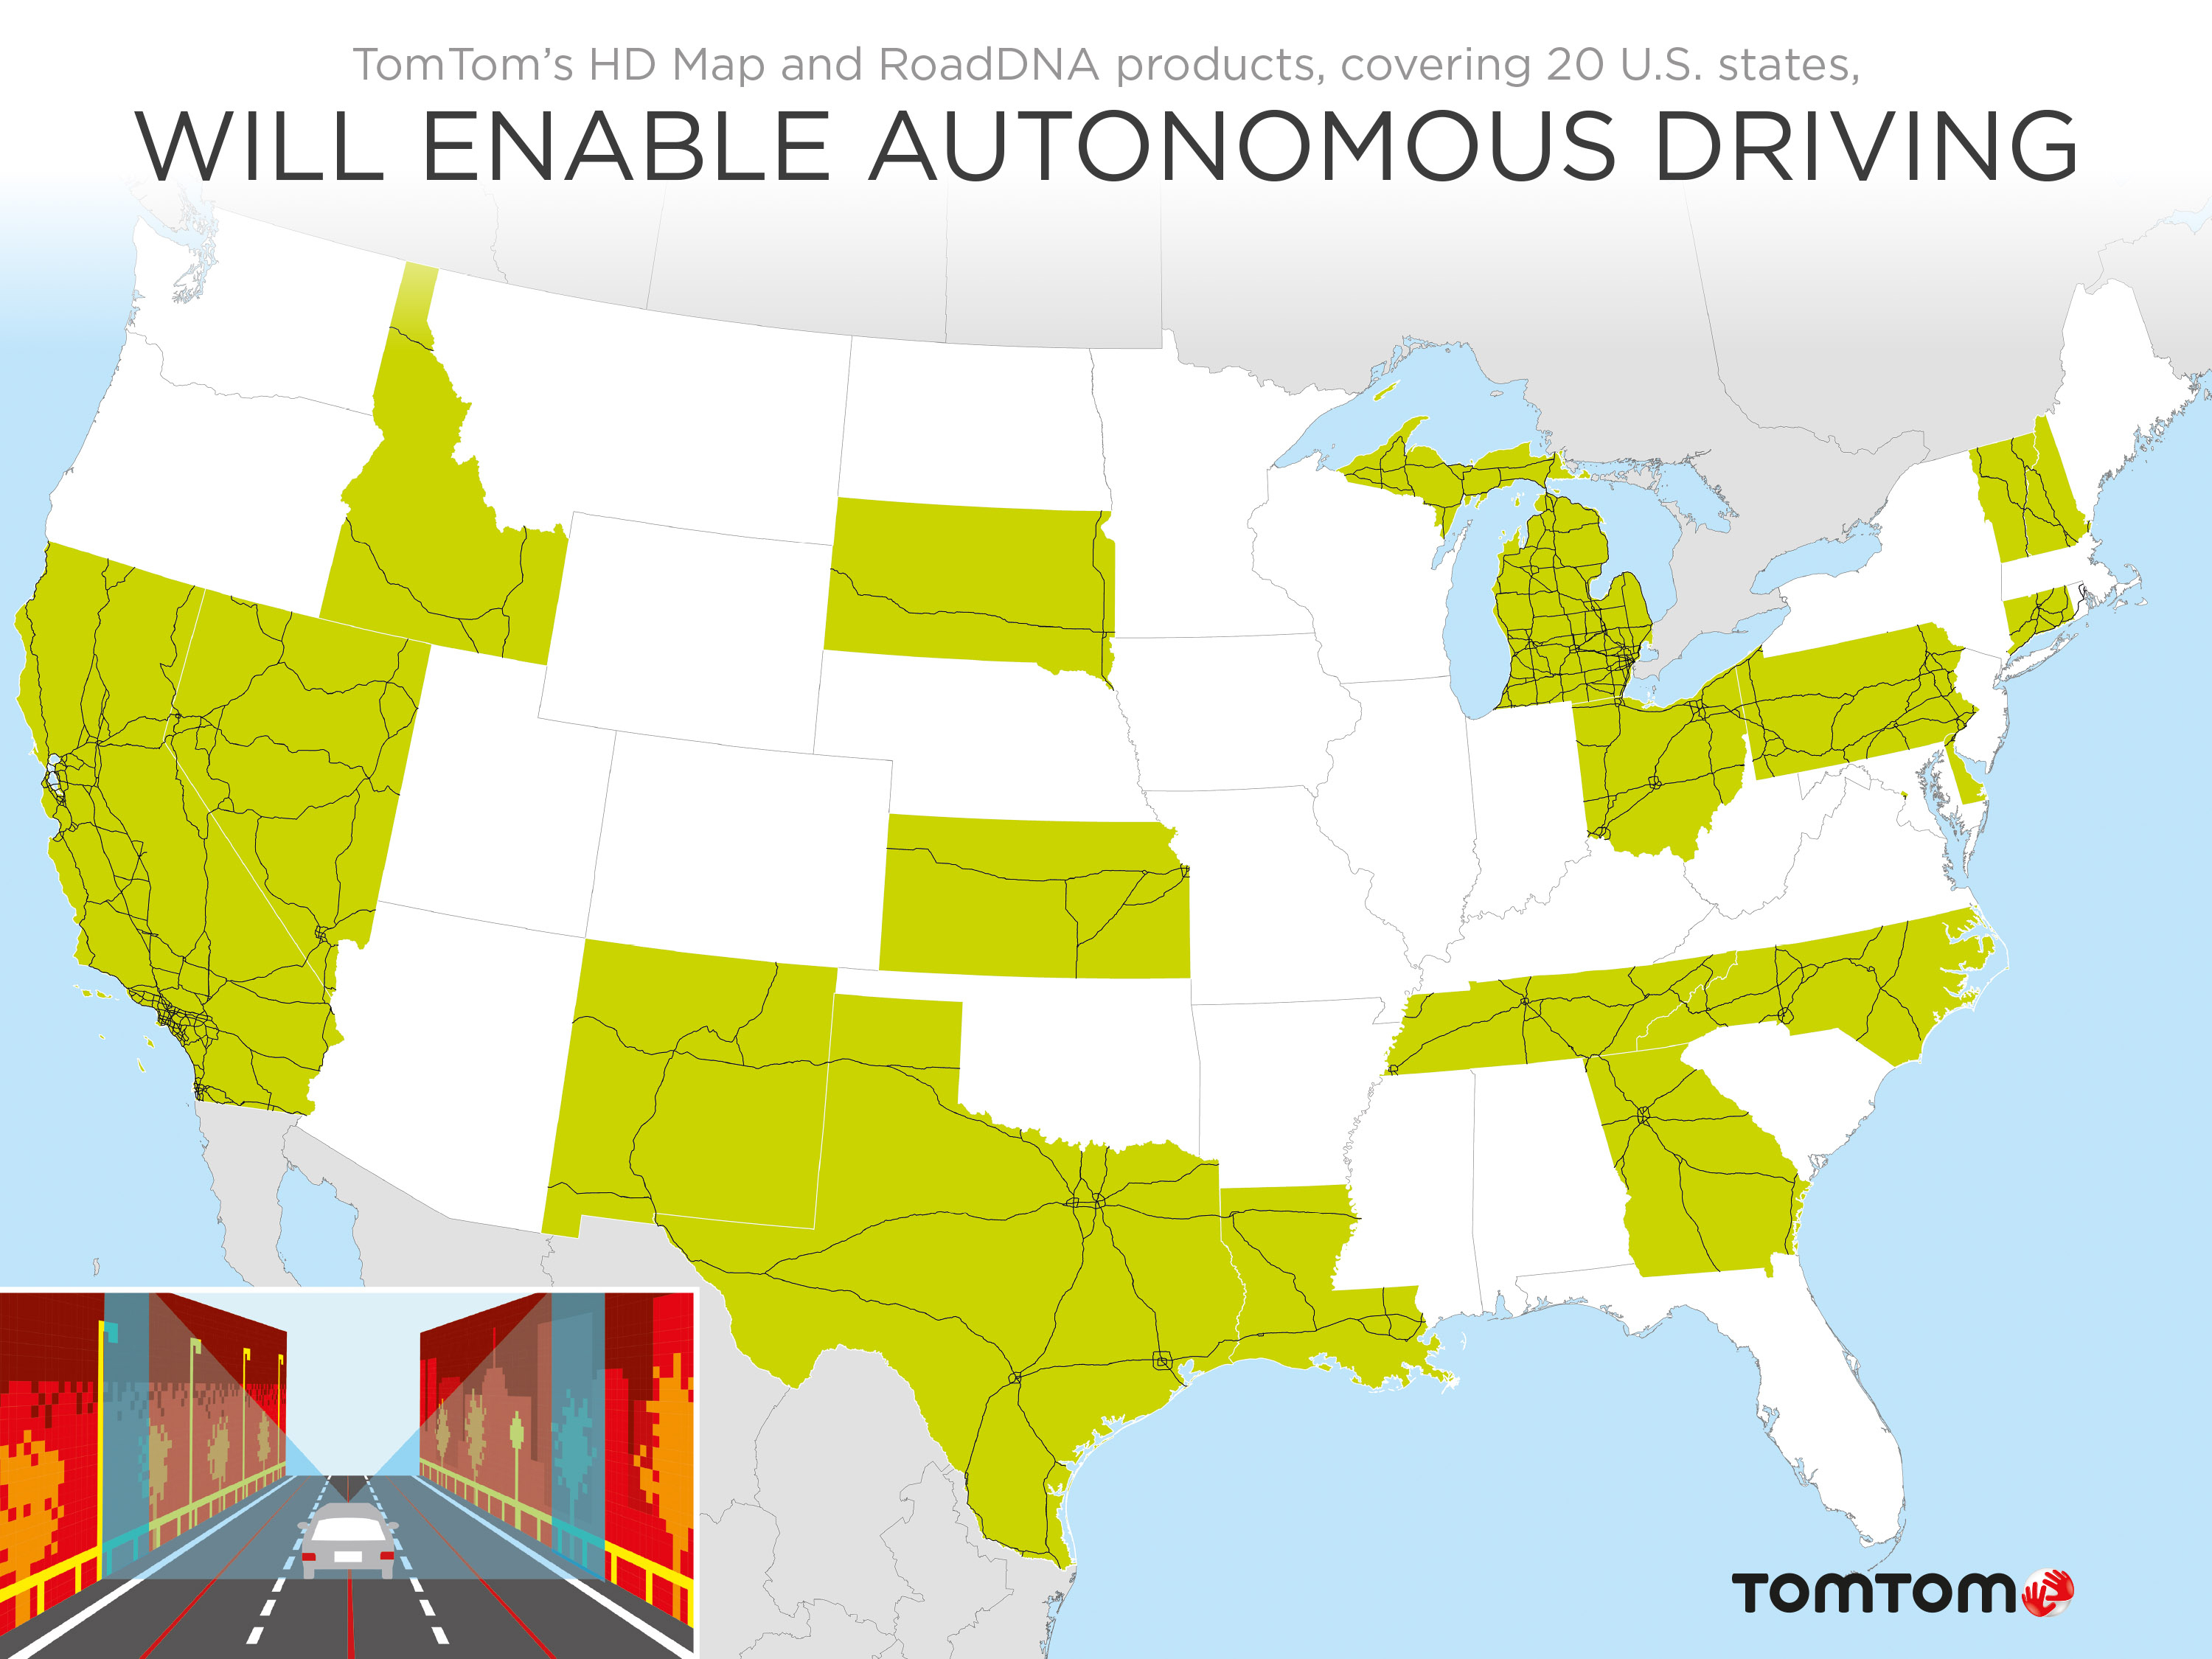 TomTom Launches HD Map RoadDNA For New States Business Wire - Us hd map